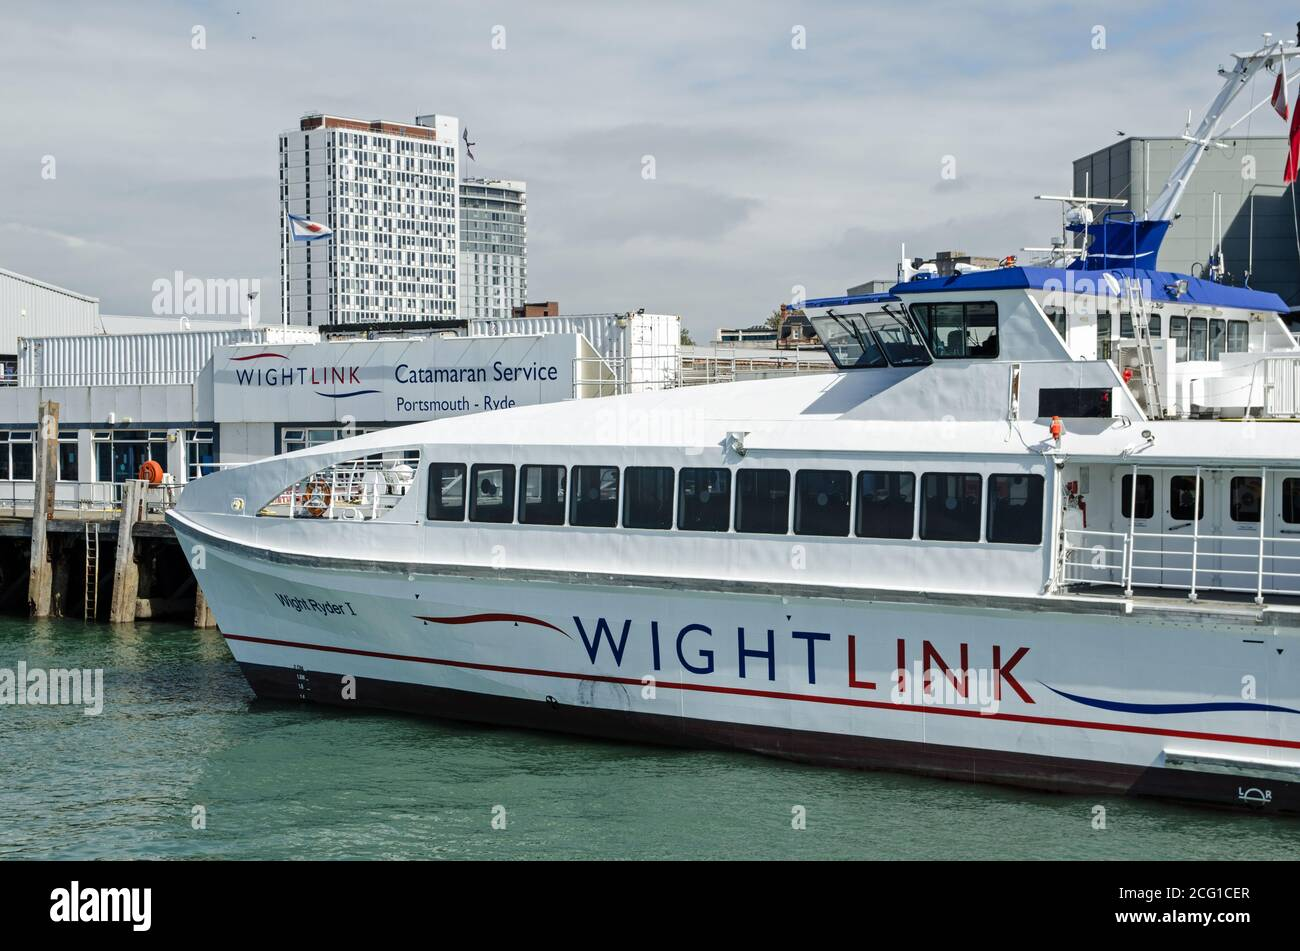 Portsmouth, UK - September 8, 2020: One of the Wightlink passenger catamaran ferries docked at the Portsmouth Harbour terminal on a sunny afternoon on Stock Photo